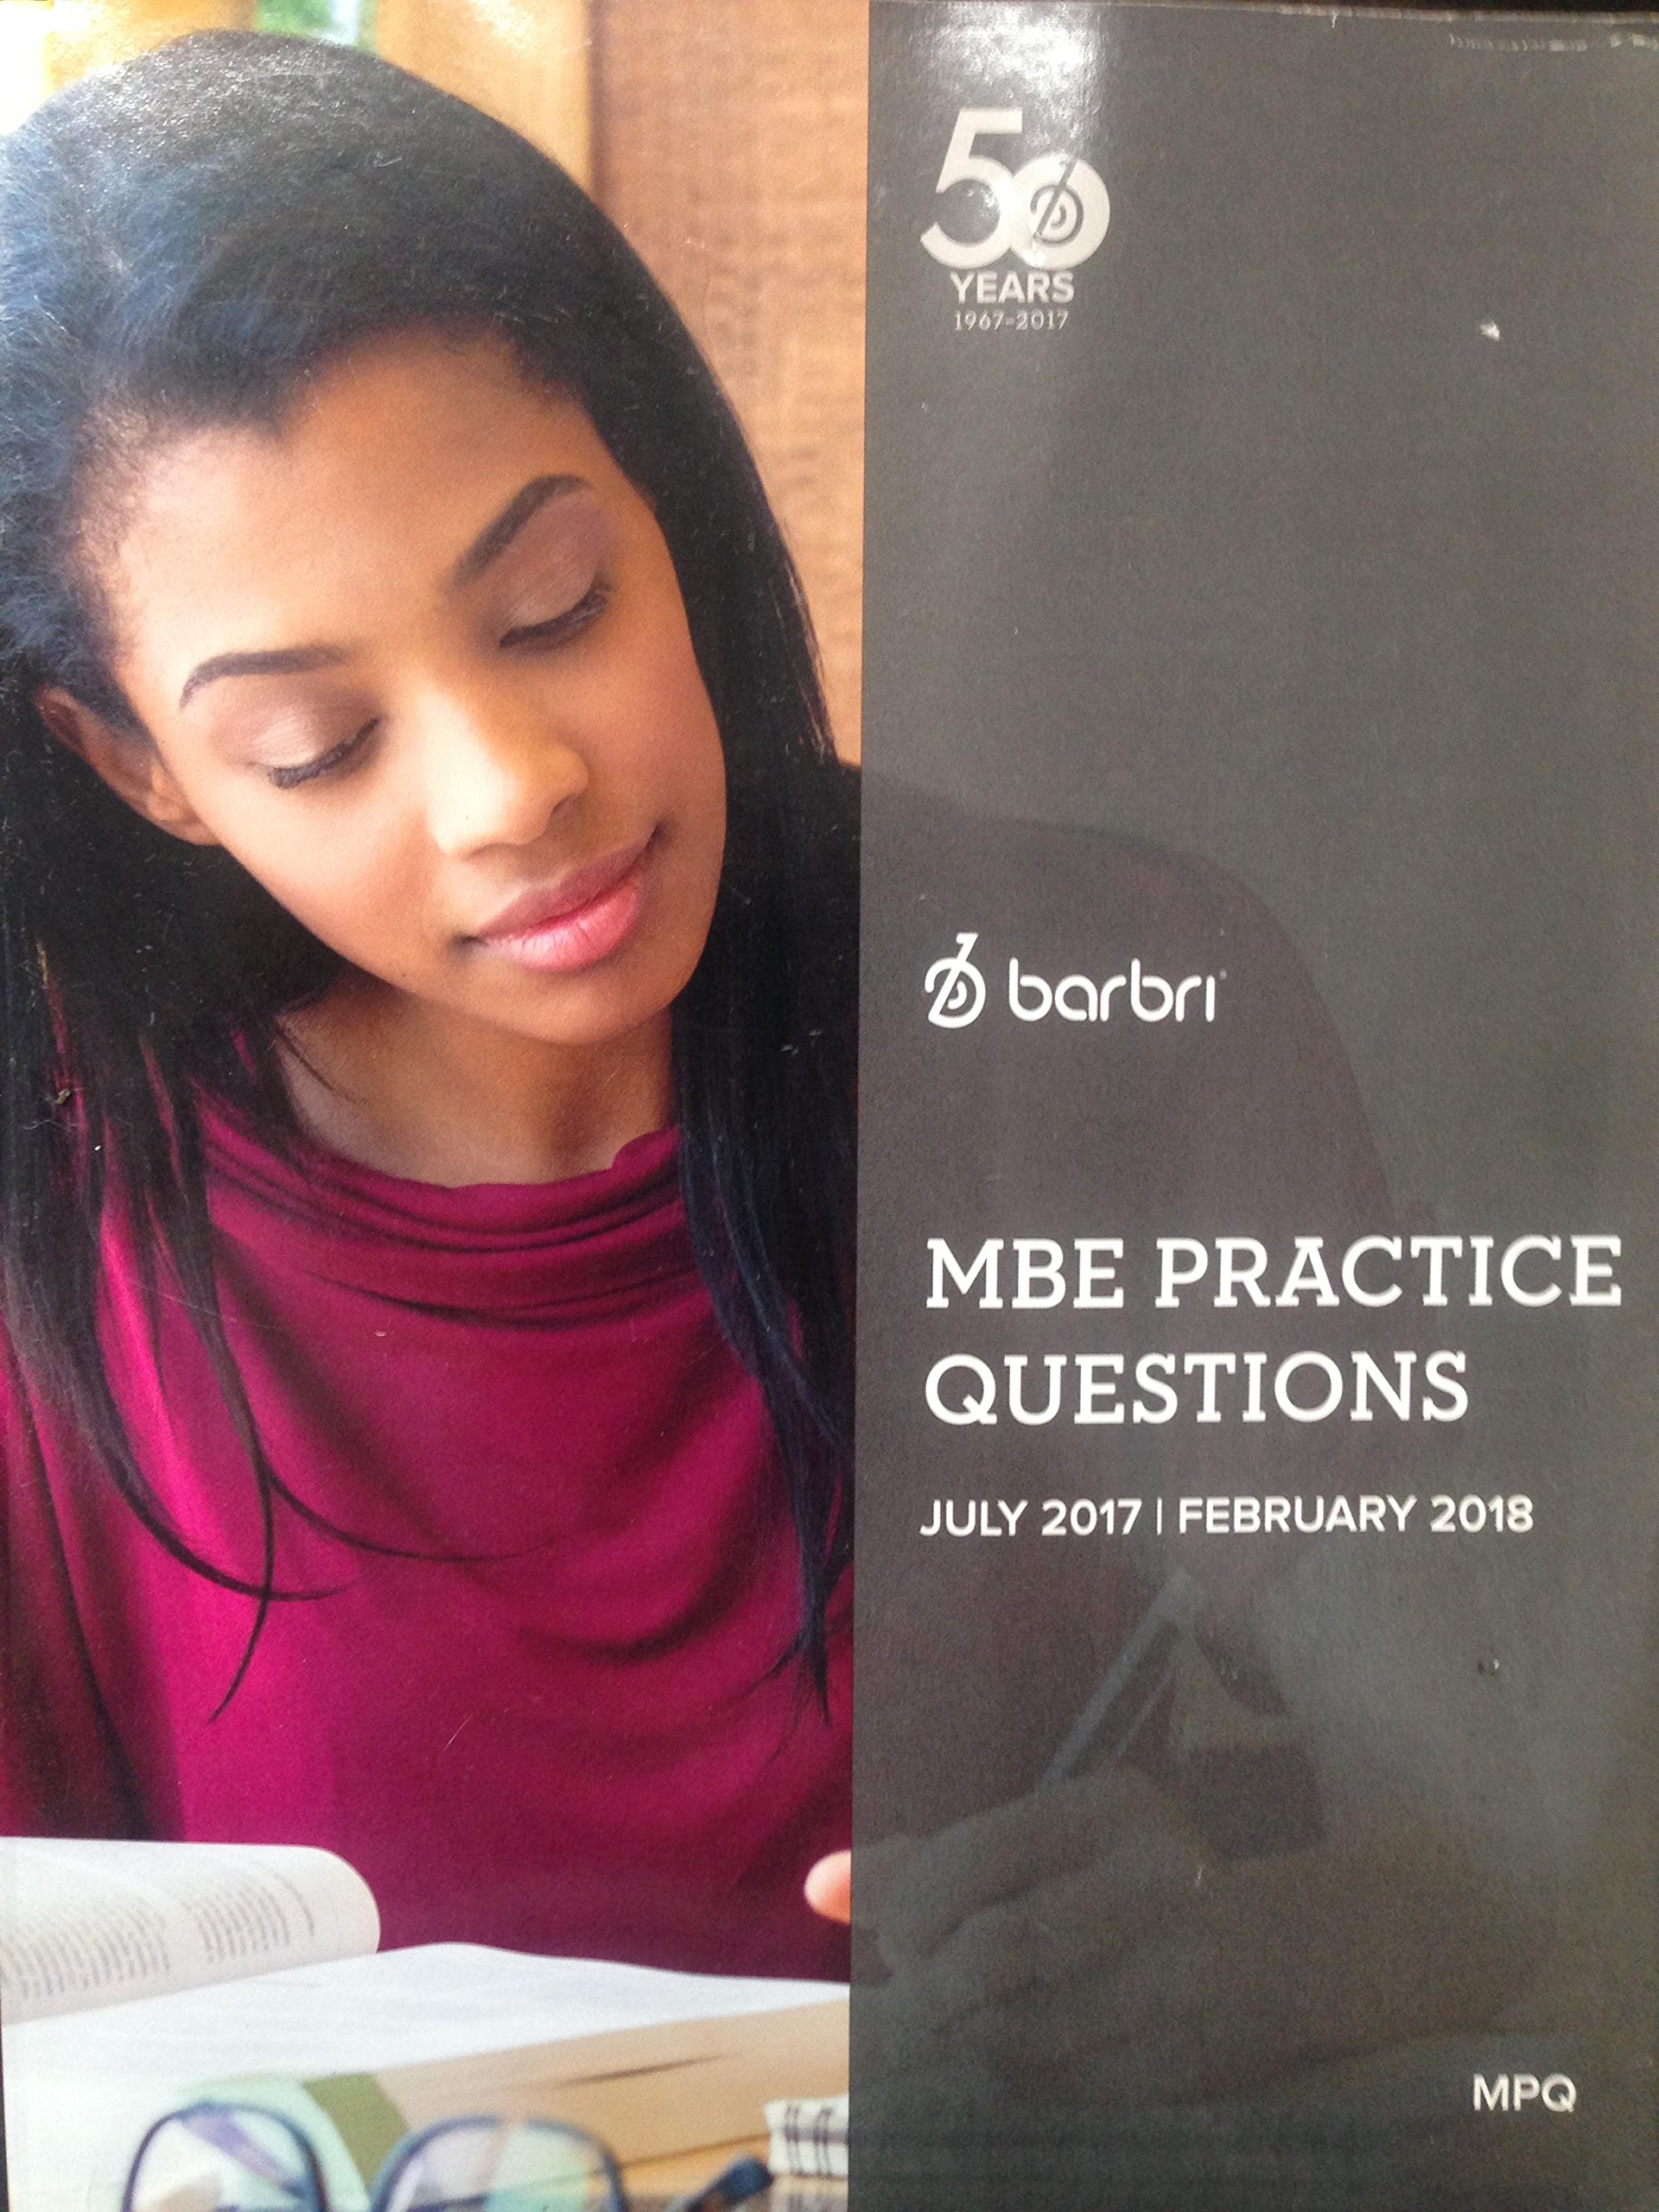 Barbri MBE Practice Questions July 2017-February 2018